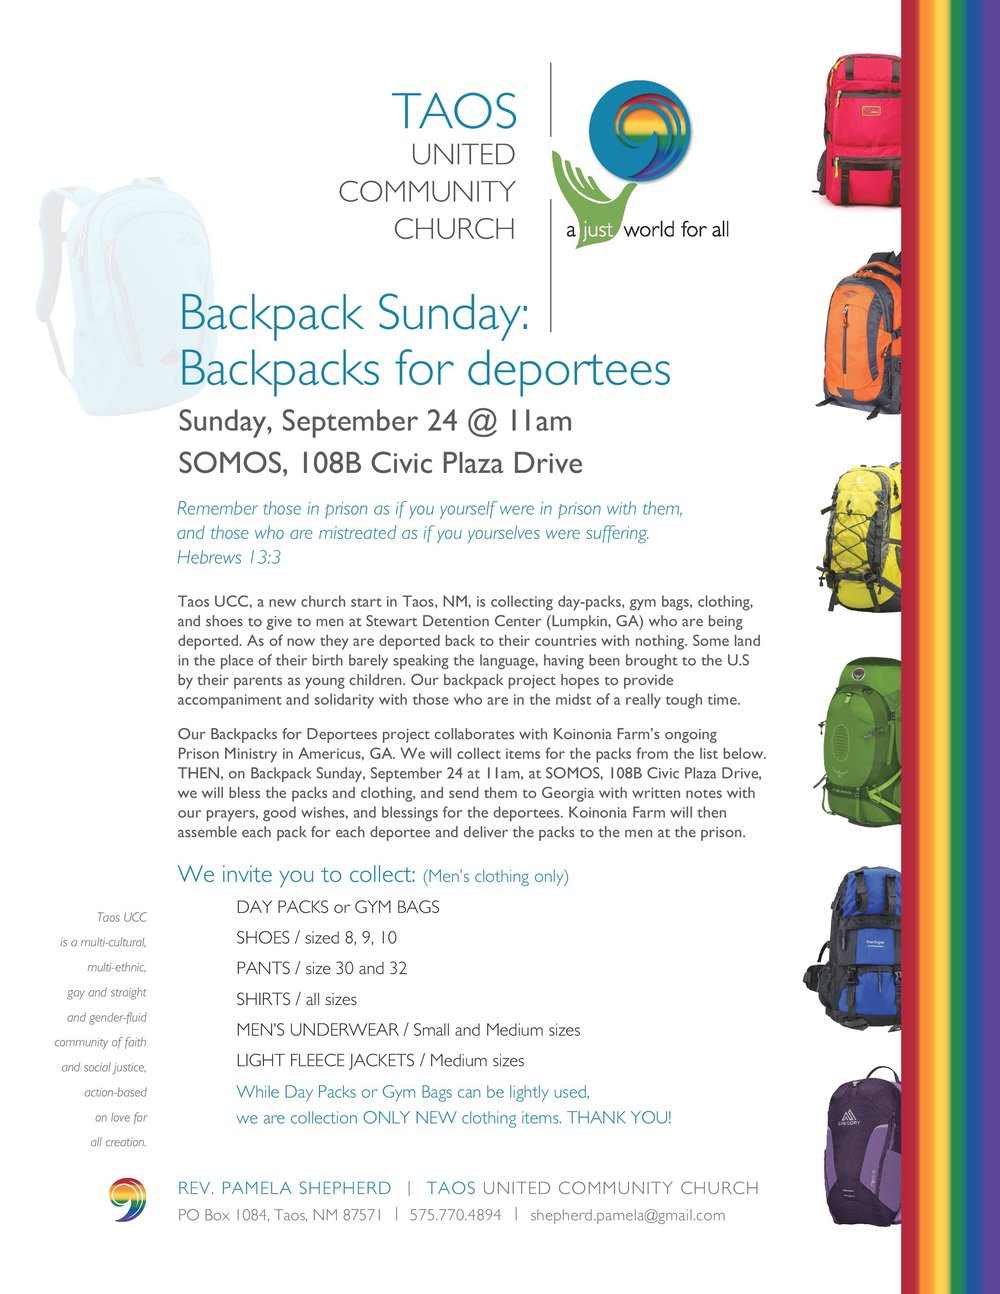 Taos-UCC-Backpack-Giveaway-Flyer jpg.jpg